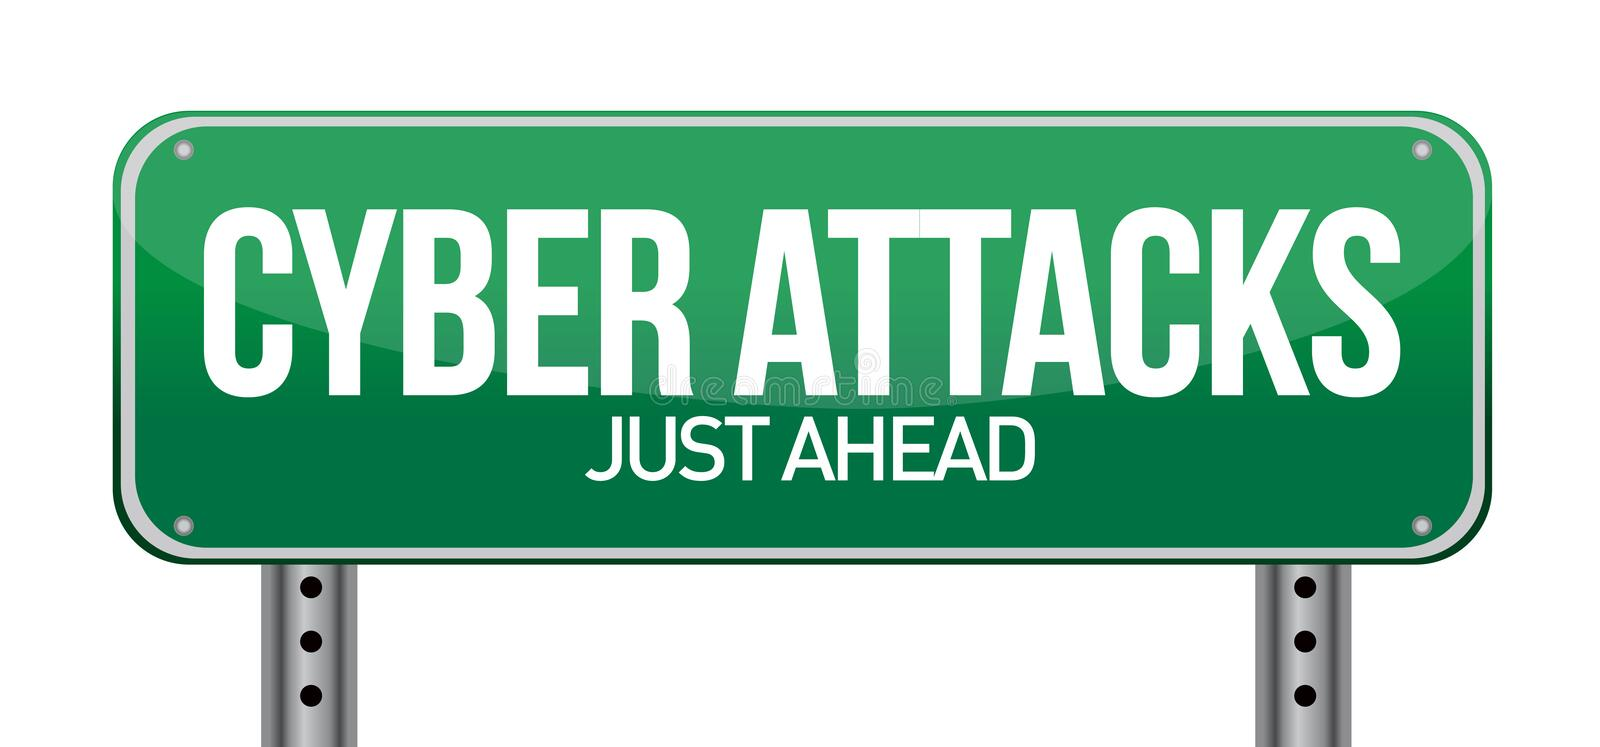 Cyber attacks as a technology concept royalty free illustration